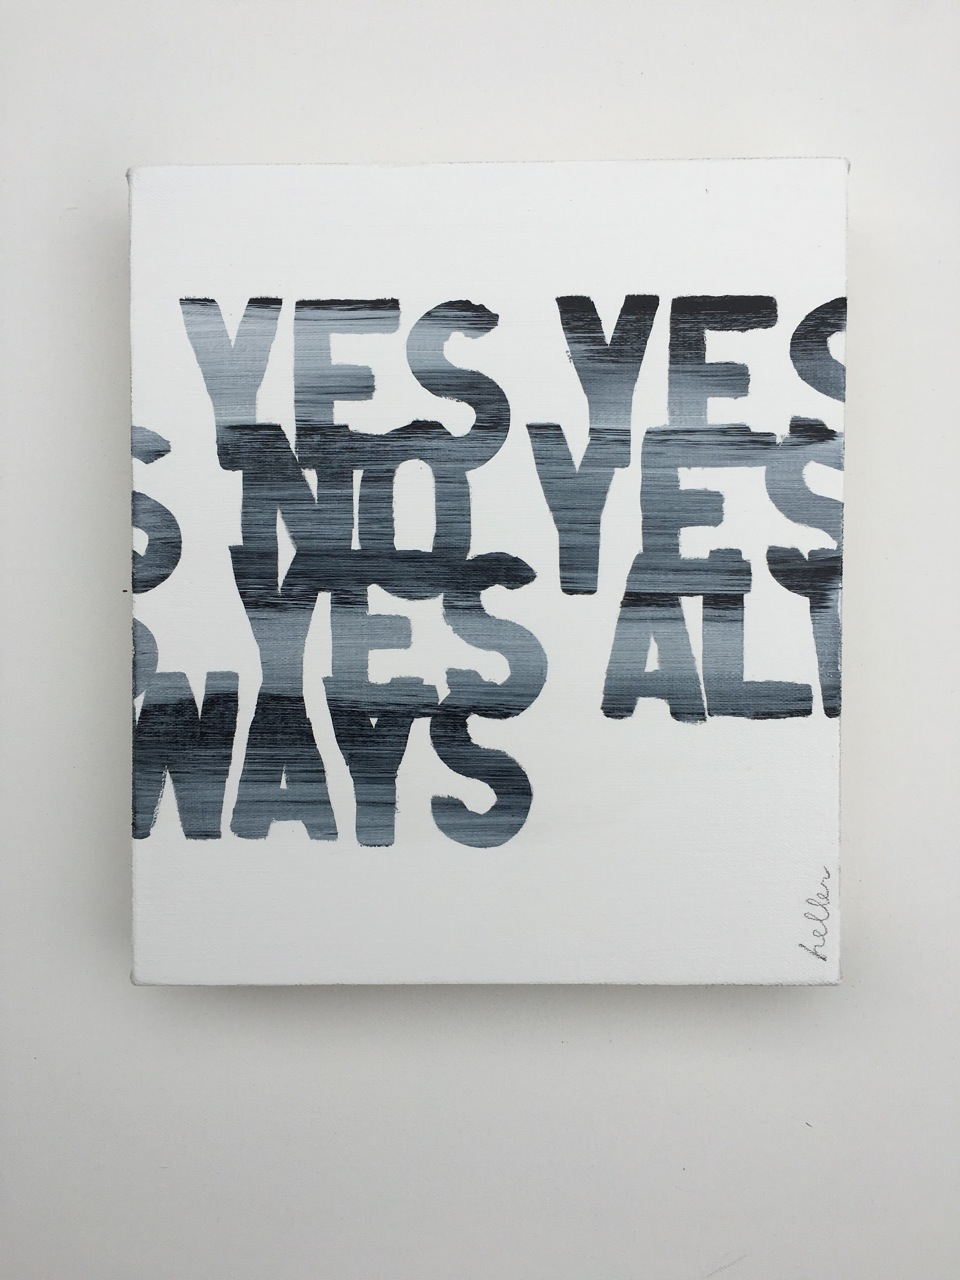 Matthew Heller,  Yes Yes No Yes Yes Alway,  2016, Acrylic on canvas, 11 x 9.5 inches